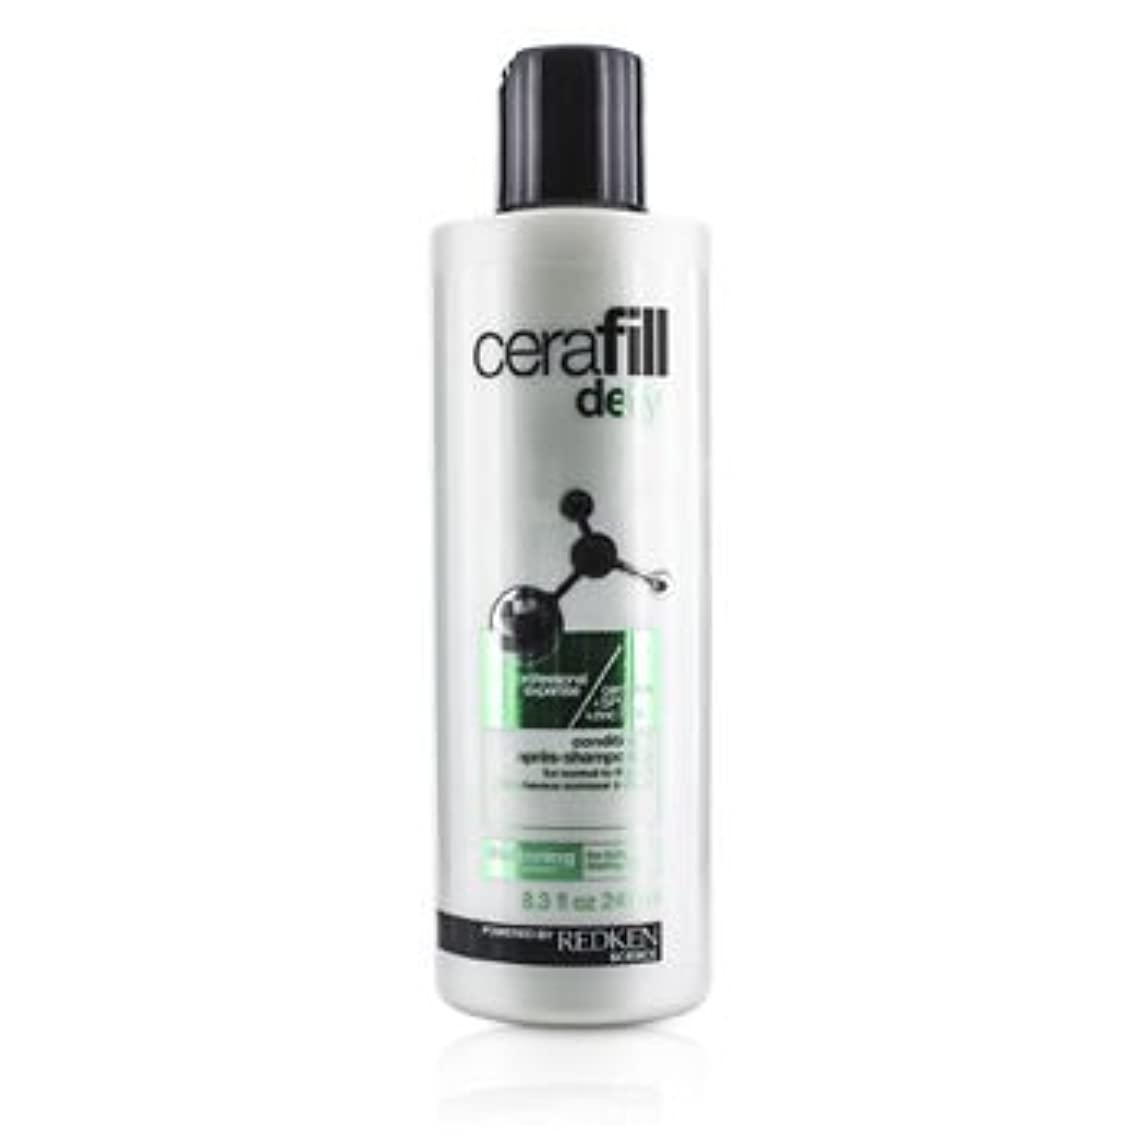 心配するキラウエア山データベース[Redken] Cerafill Defy Thickening Conditioner (For Normal to Thin Hair) 245ml/8.3oz